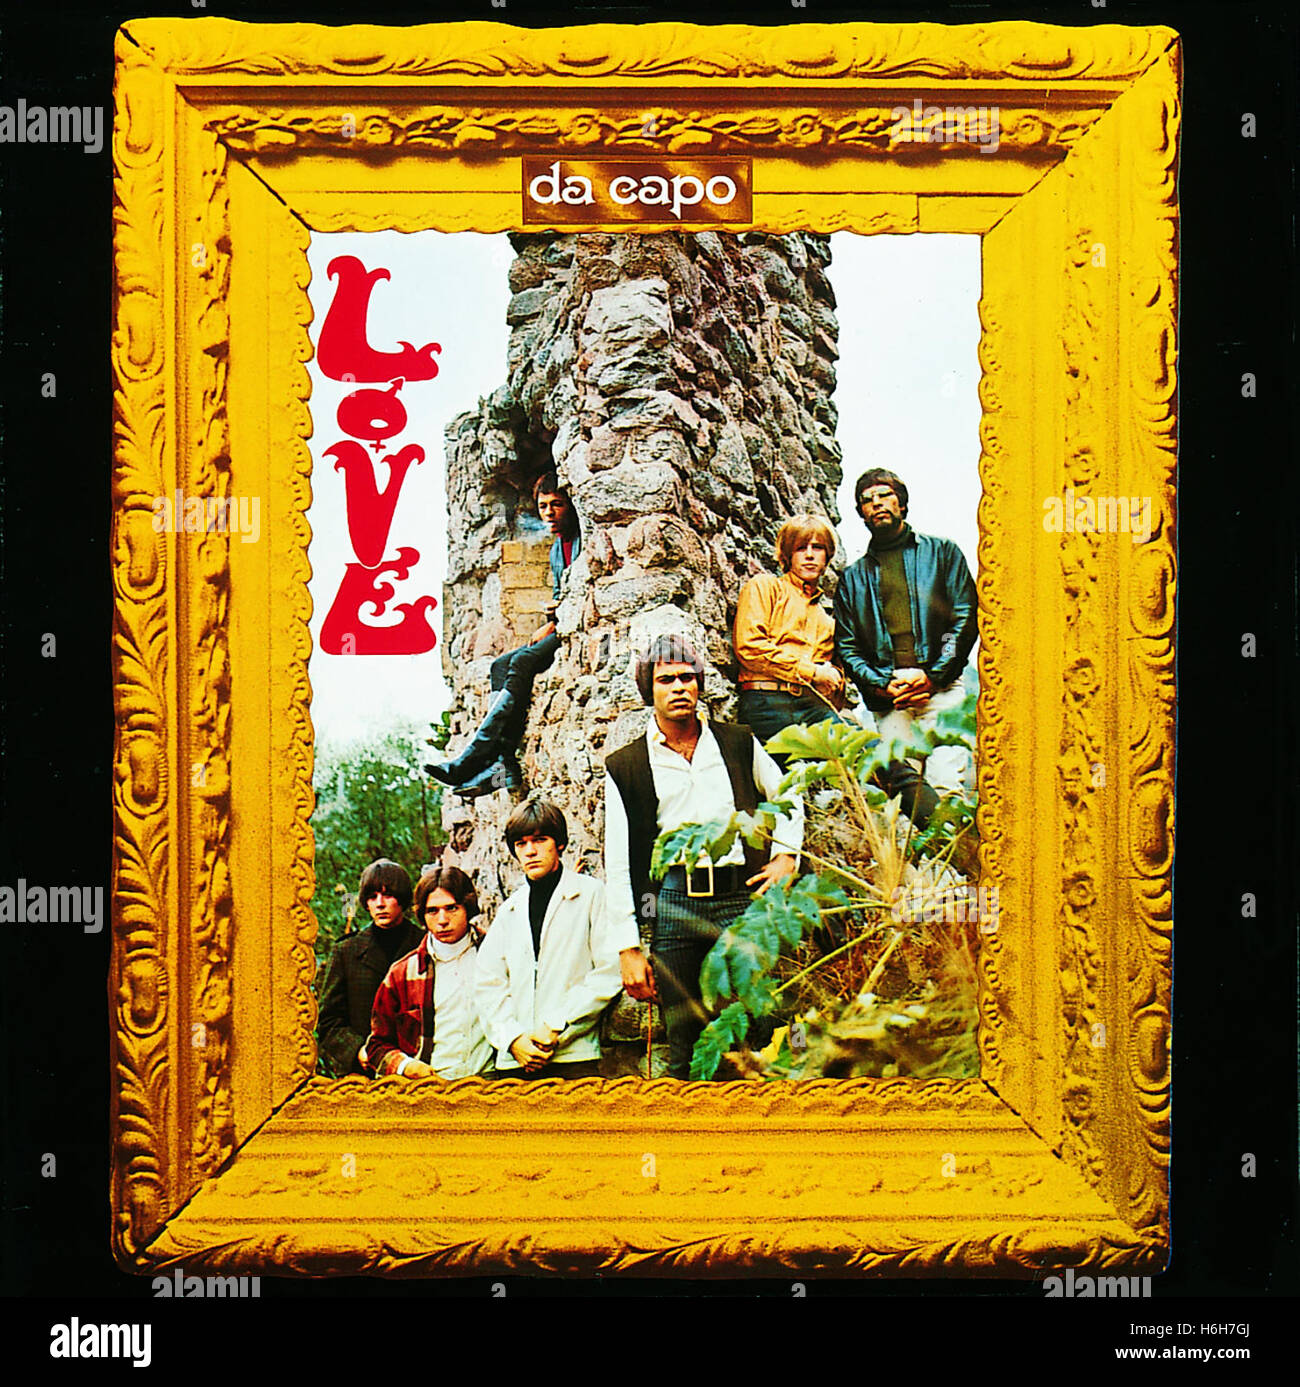 The cover of LP 'Da Capo' by the band LOVE, featuring Arthur Lee,  circa 1966 - Stock Image